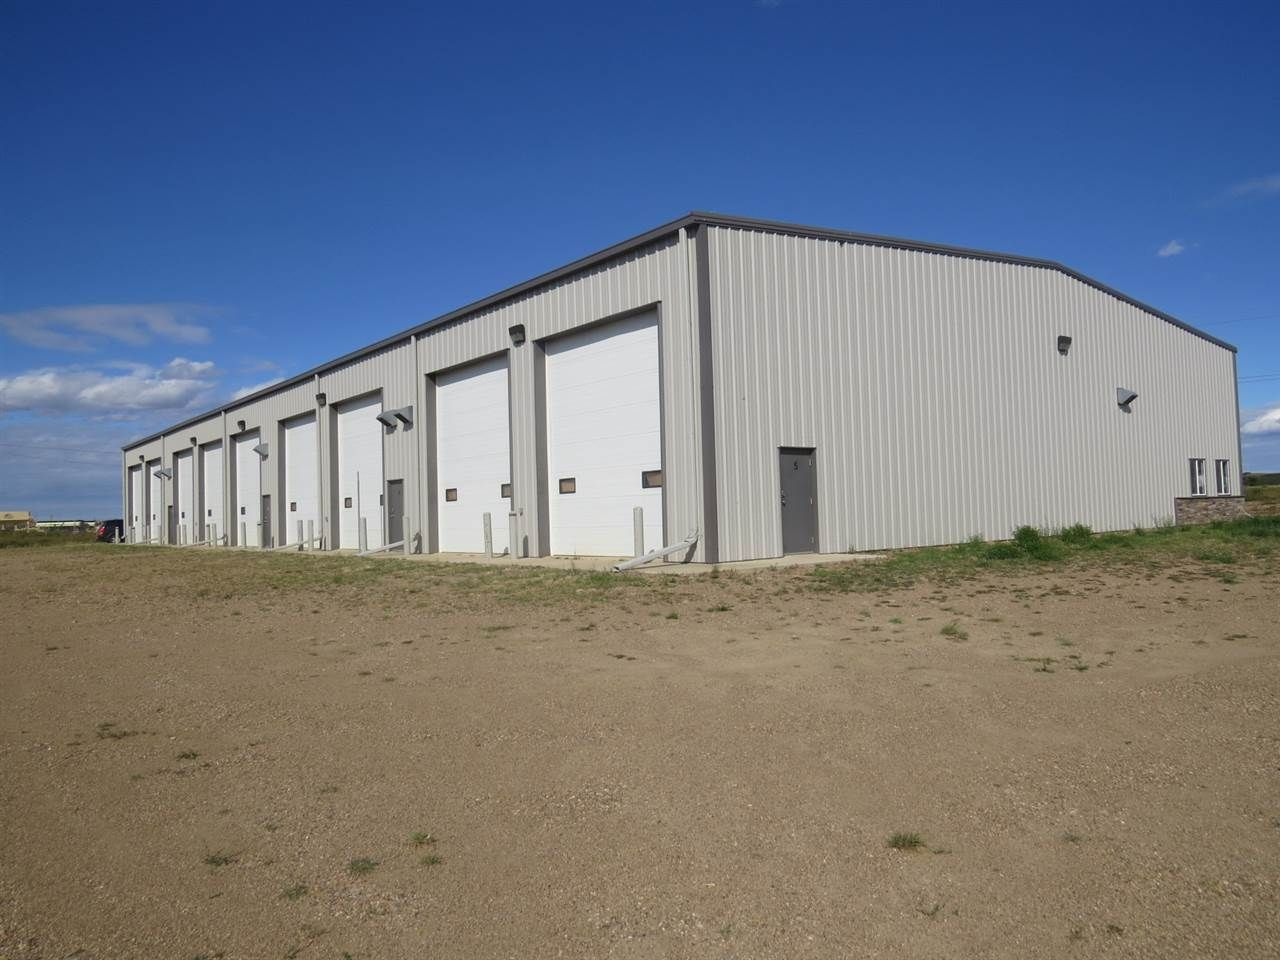 Main Photo: 4707 43 Avenue: Hardisty Industrial for sale : MLS®# E4213479